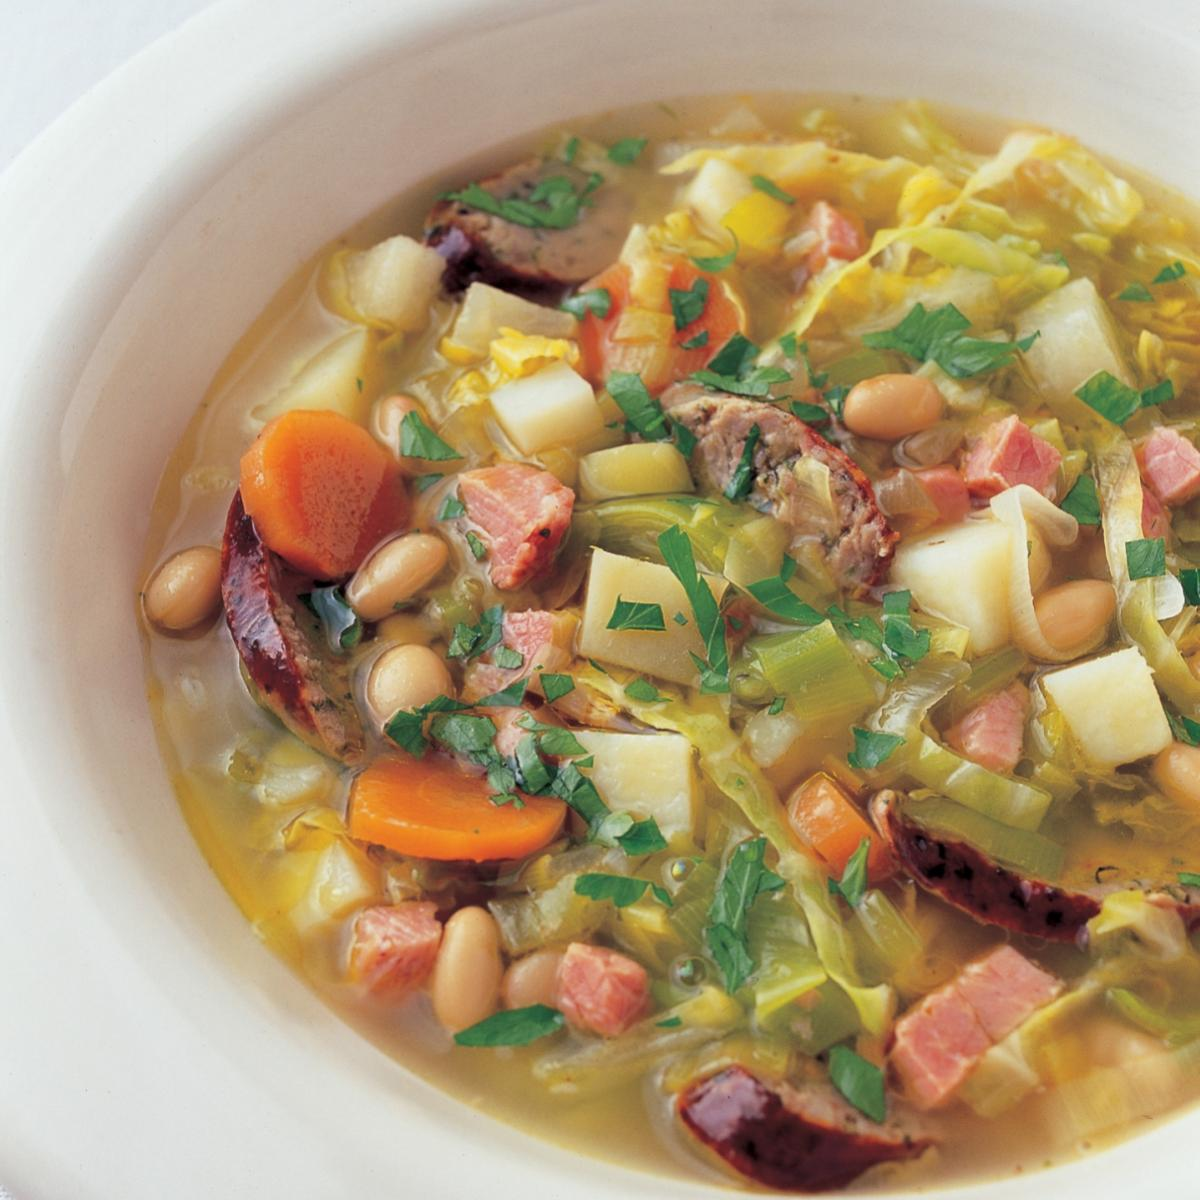 A picture of Delia's La Potee (French Farmhouse Soup with Bacon, Sausage and Beans) recipe